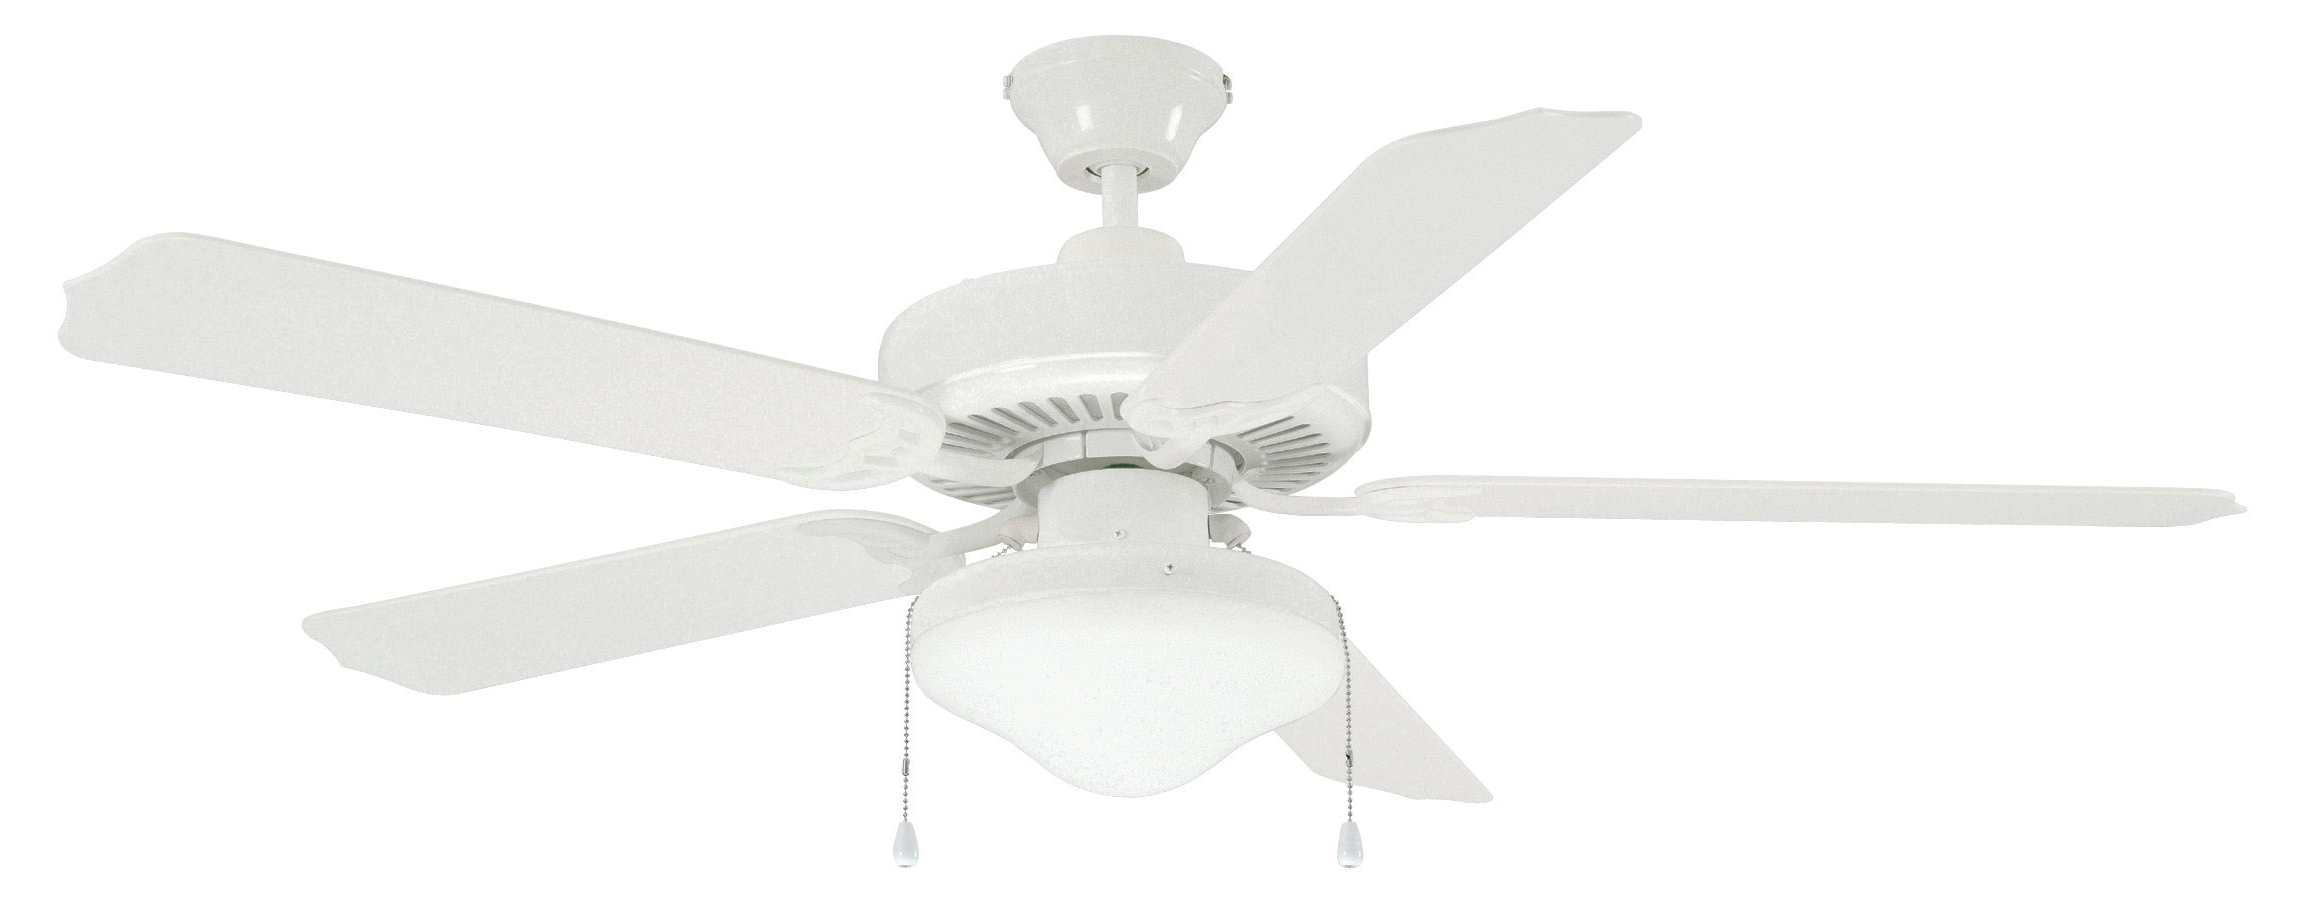 Ceiling Fans White Ceiling Fan With Light Cruise Outdoor Wet Rated Throughout 2018 White Outdoor Ceiling Fans (View 5 of 20)